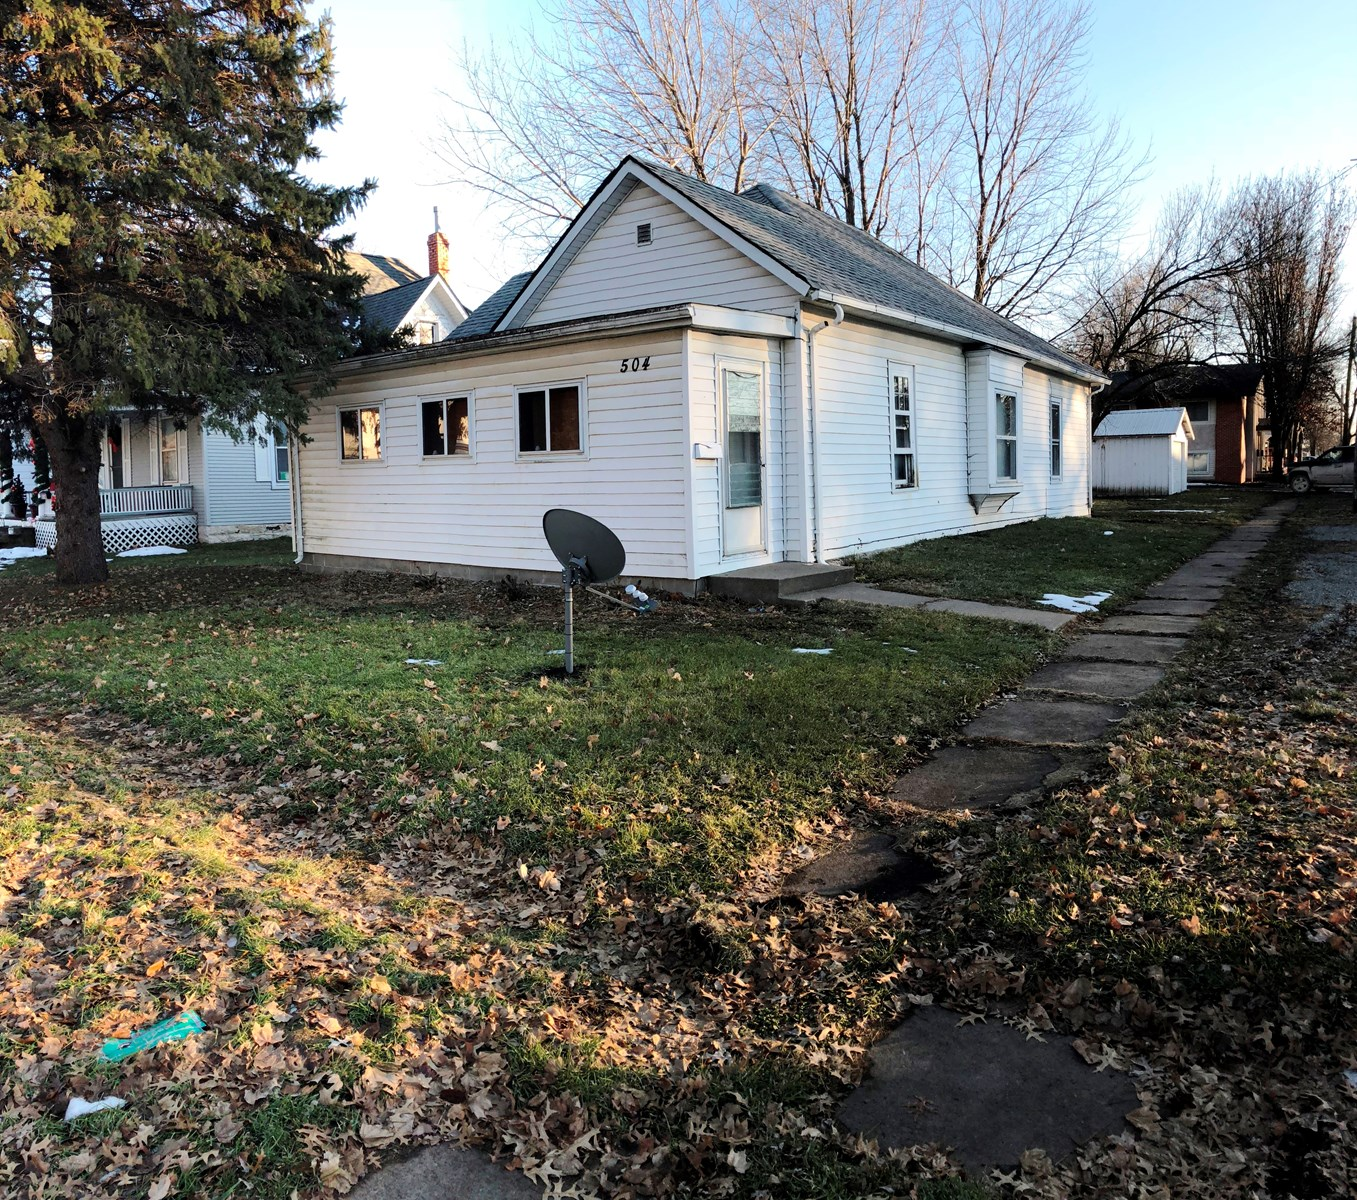 Two Bedroom Bungalow For Sale in Albia IA